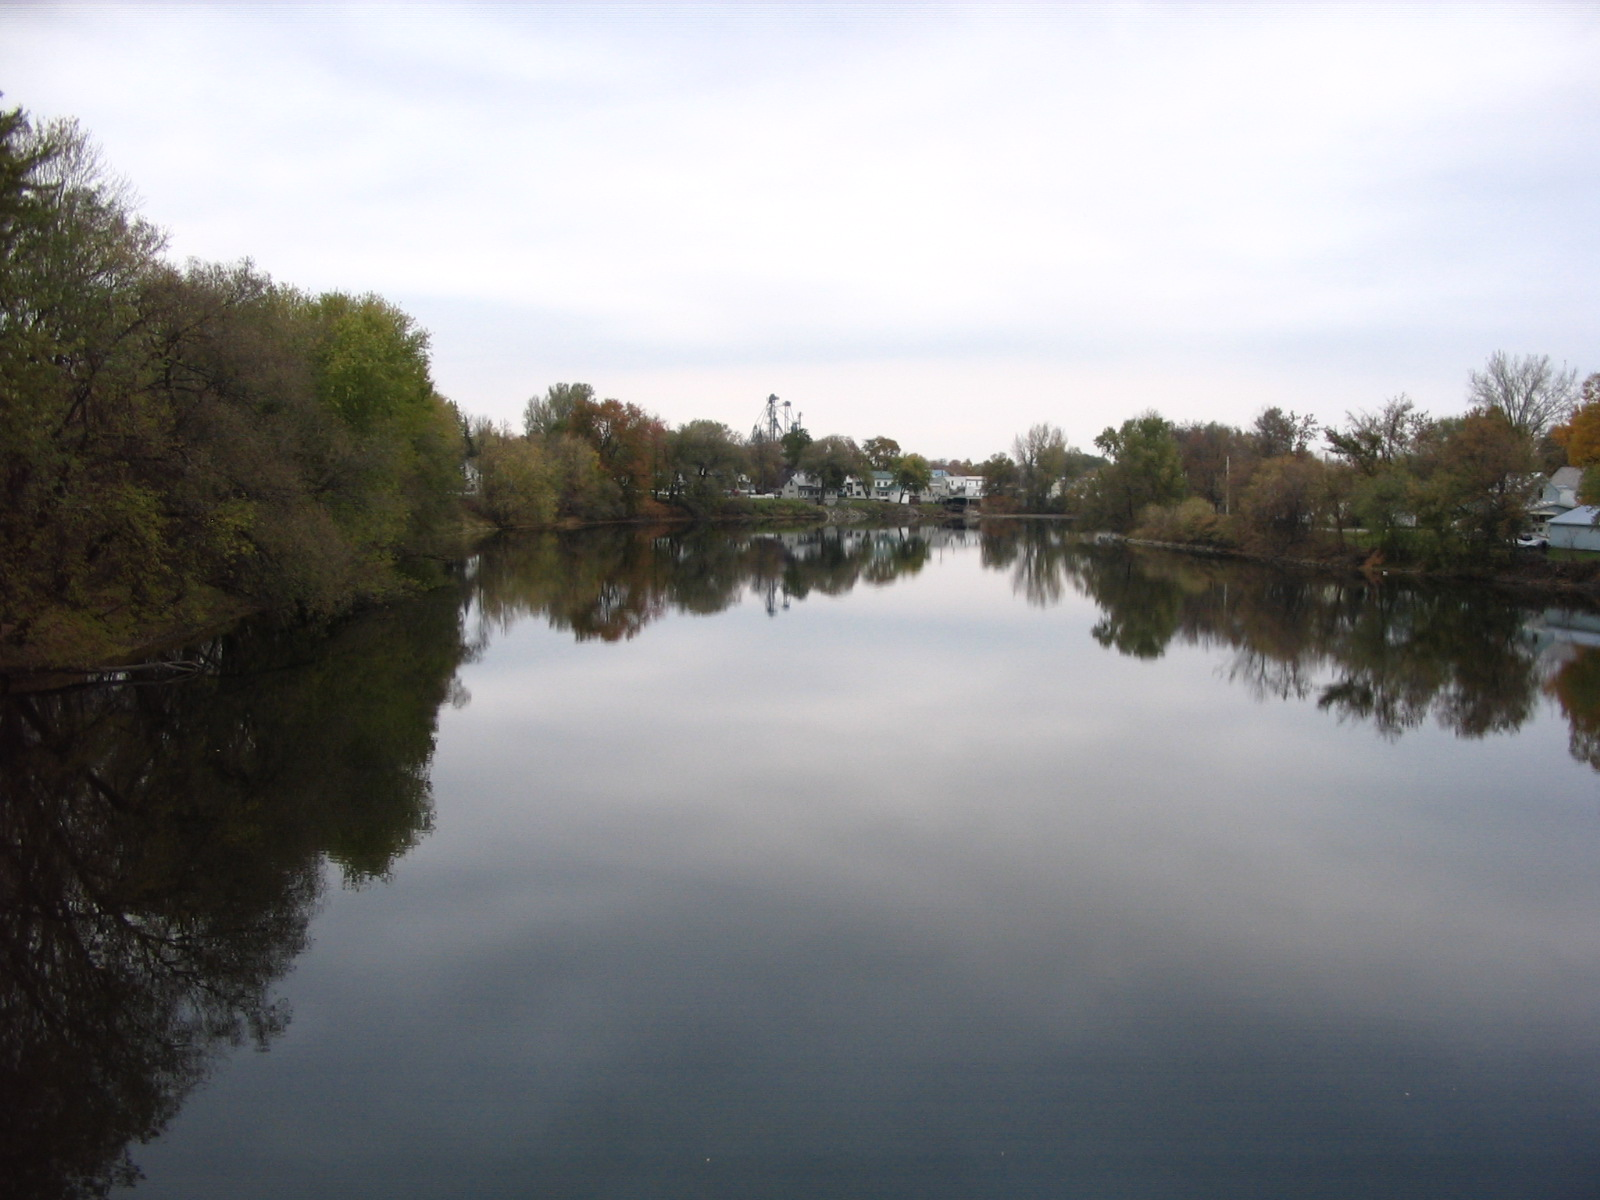 Photograph of the Missisquoi River at Swanton, VT (SWAV1) looking downstream